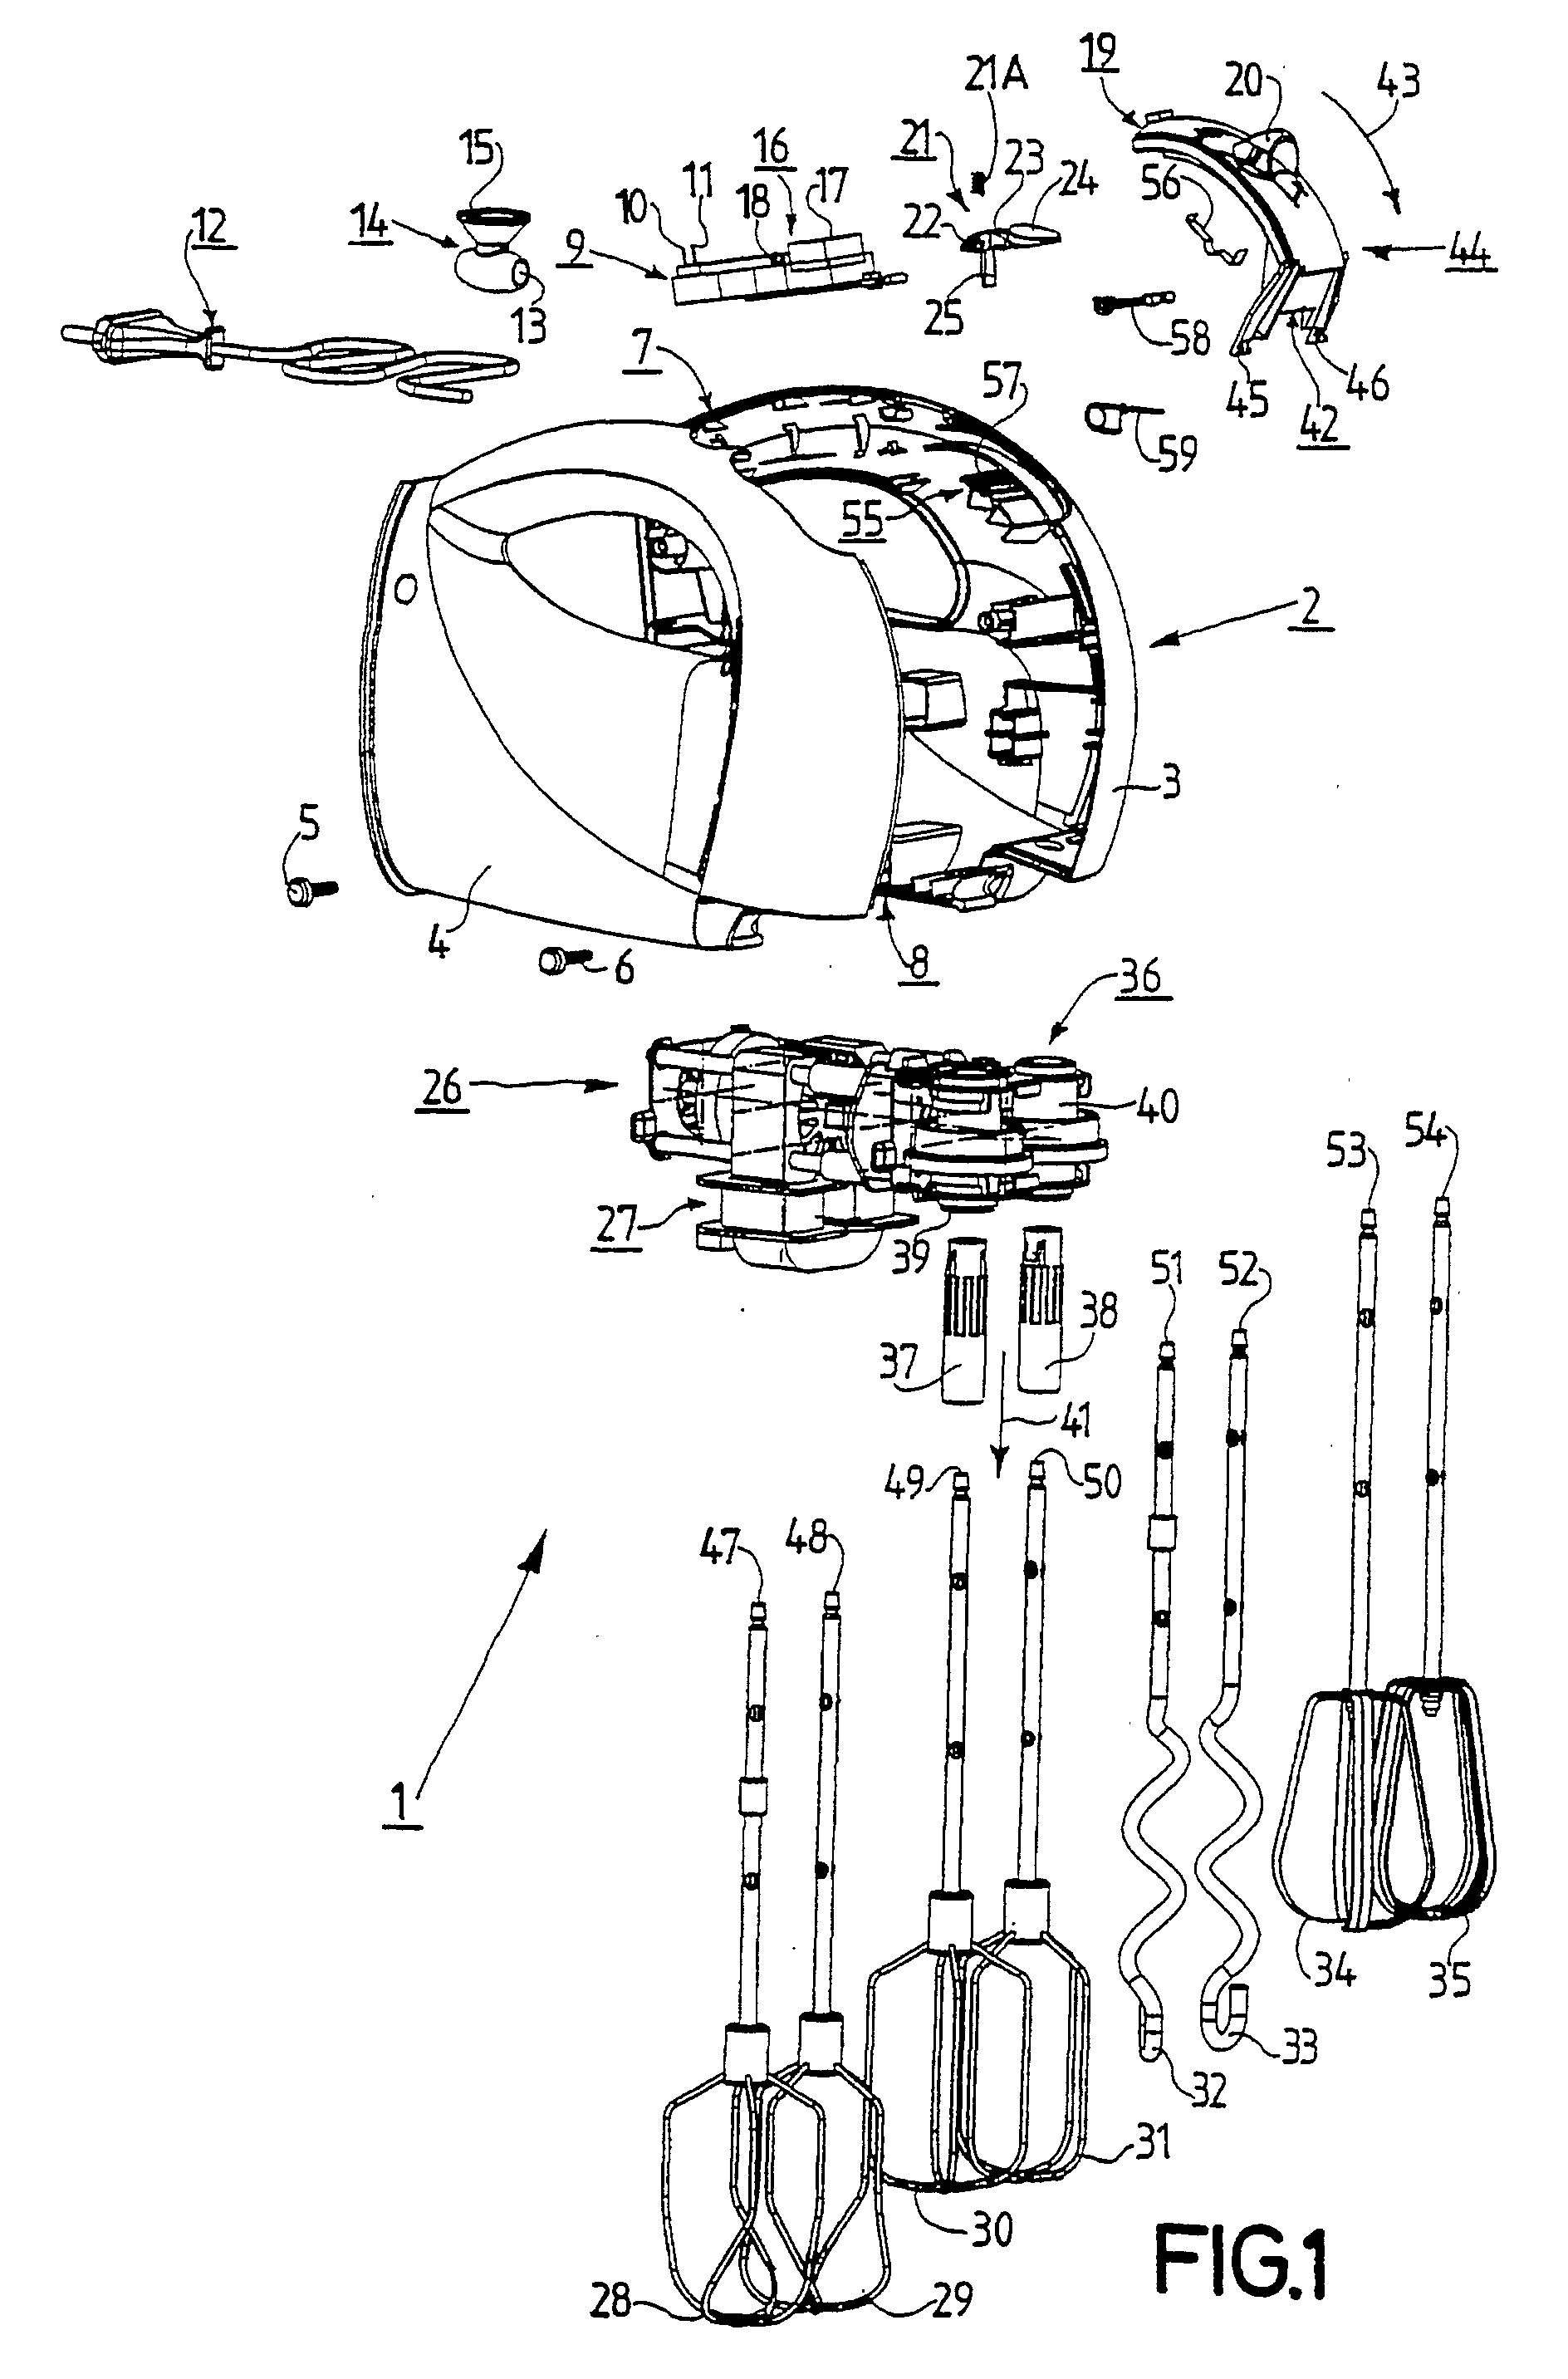 Kitchen Aid Dish Washer Parts likewise Product detail moreover 7ijq5o9m1pv3 Uniflame Grill Parts moreover Hamilton Beach Parts Diagram furthermore Ge Electric Range Parts Diagram. on kitchenaid replacement parts amazon